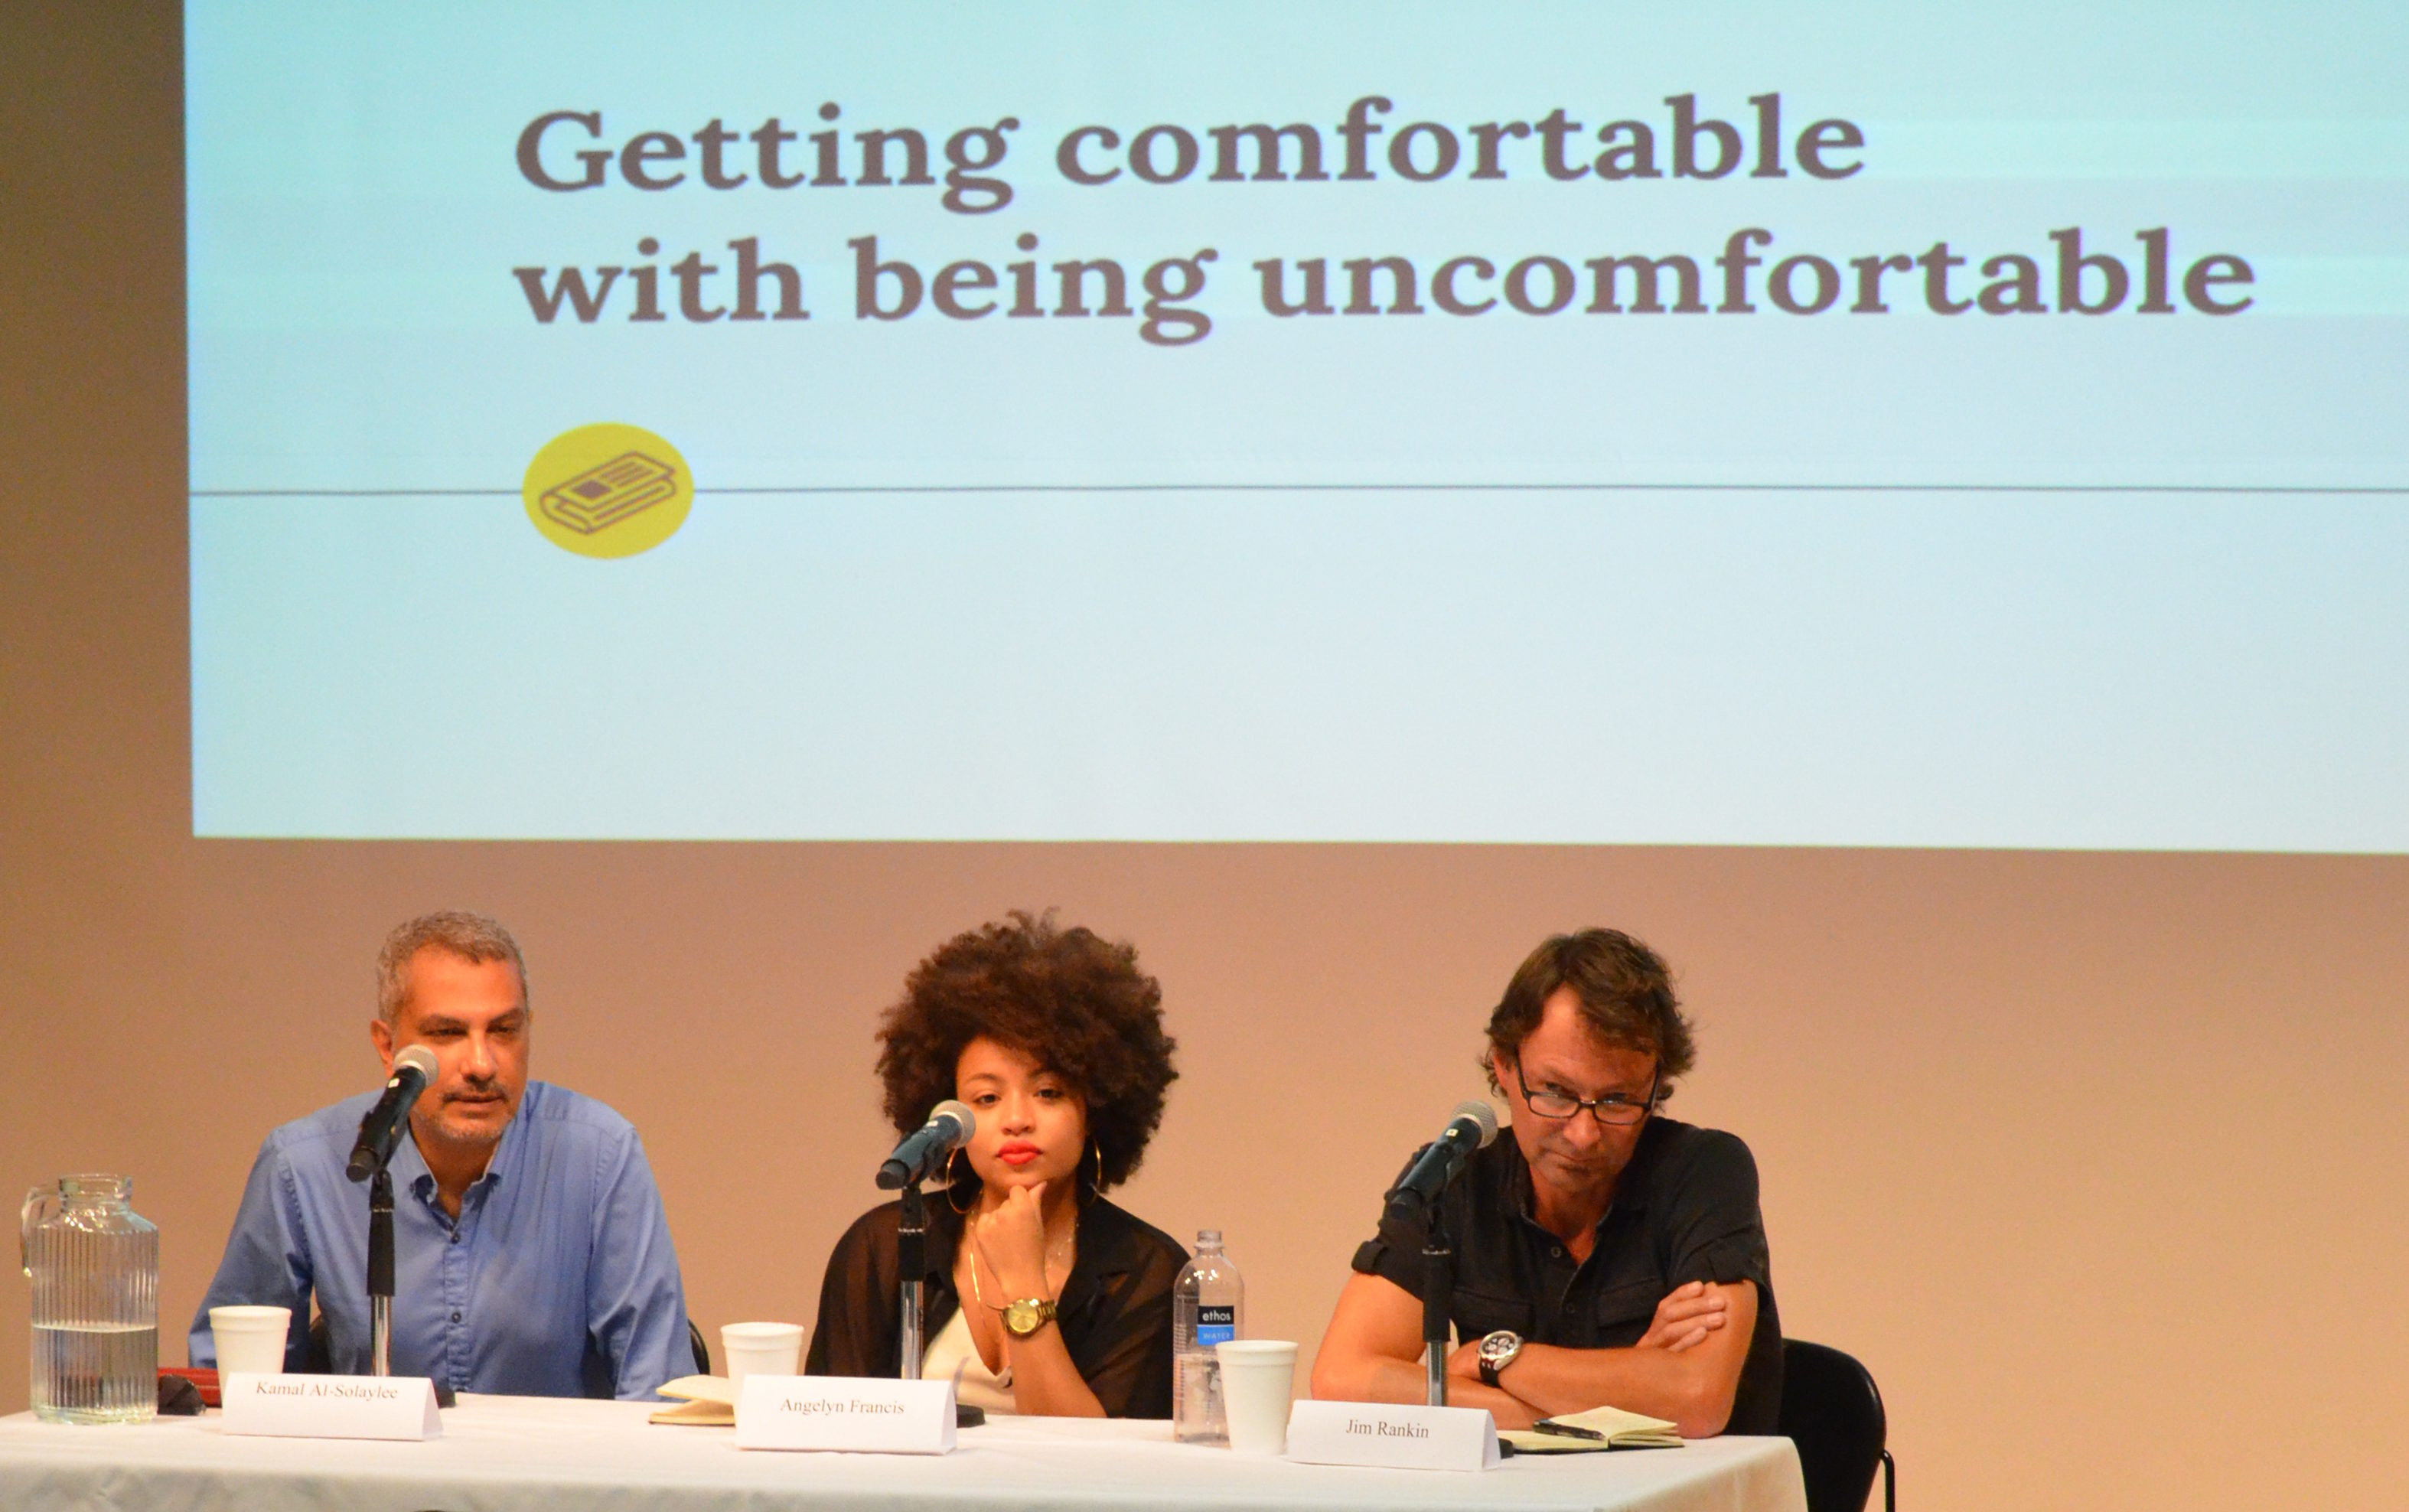 Kamal Al-Solaylee, Angelyn Francis and Jim Rankin discuss how reporters can get comfortable while covering controversial stories at an RJRC panel.